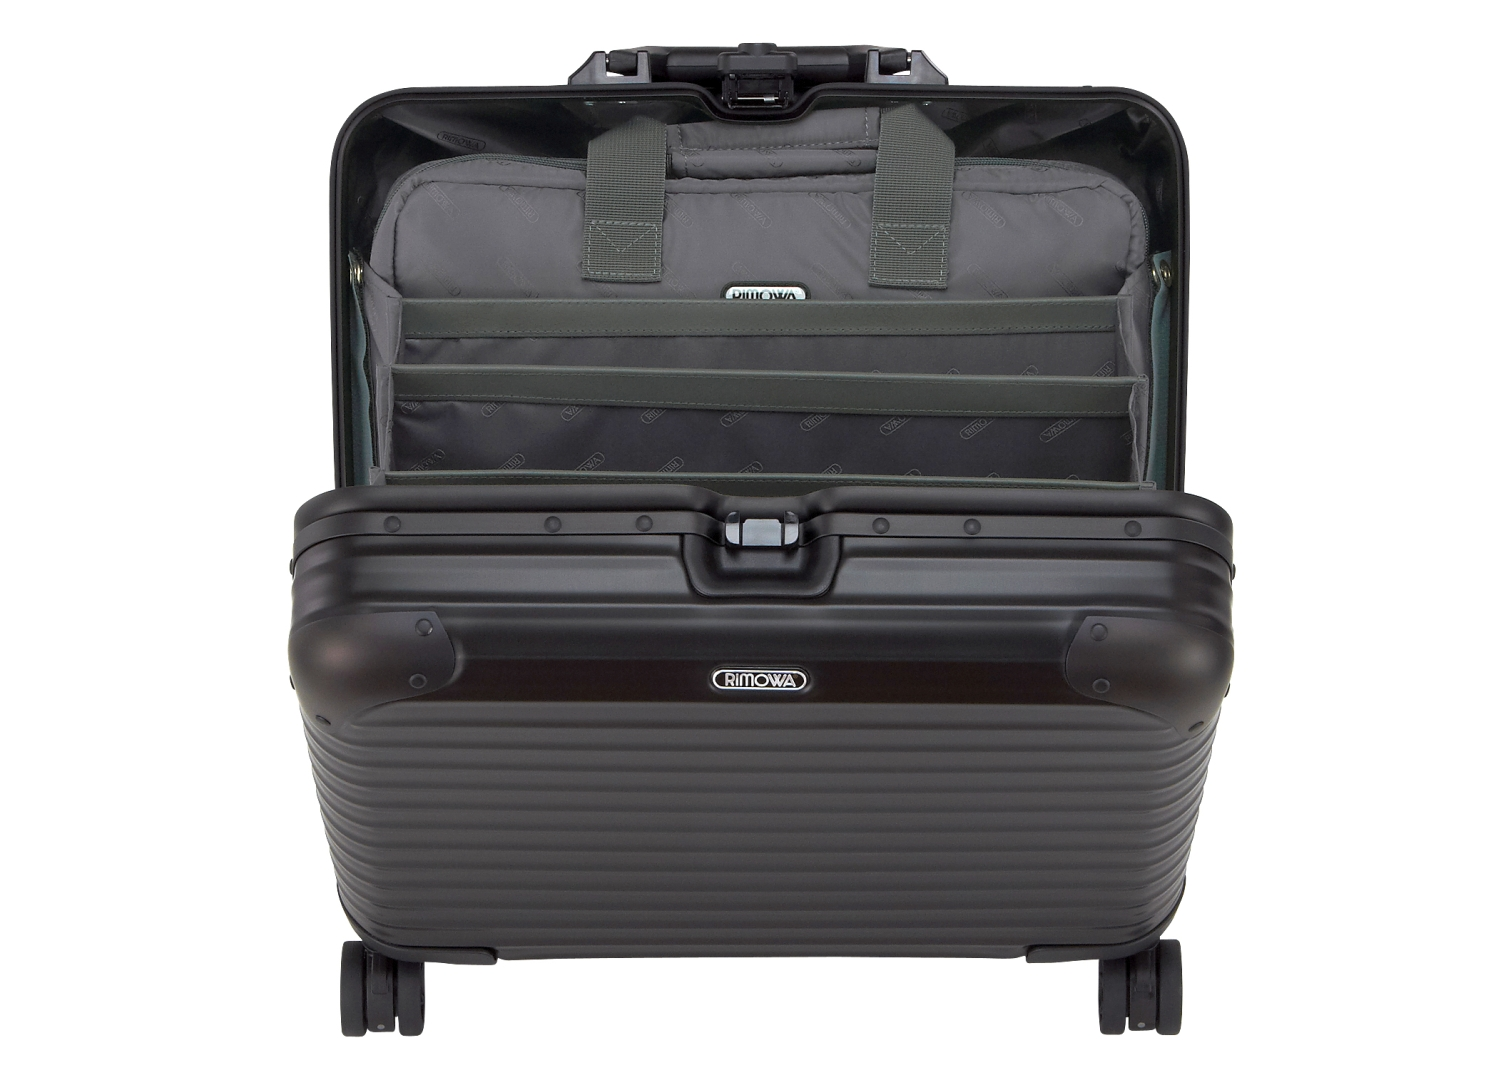 rimowa topas stealth business multiwheel trolley 40 kofferexpress 24. Black Bedroom Furniture Sets. Home Design Ideas